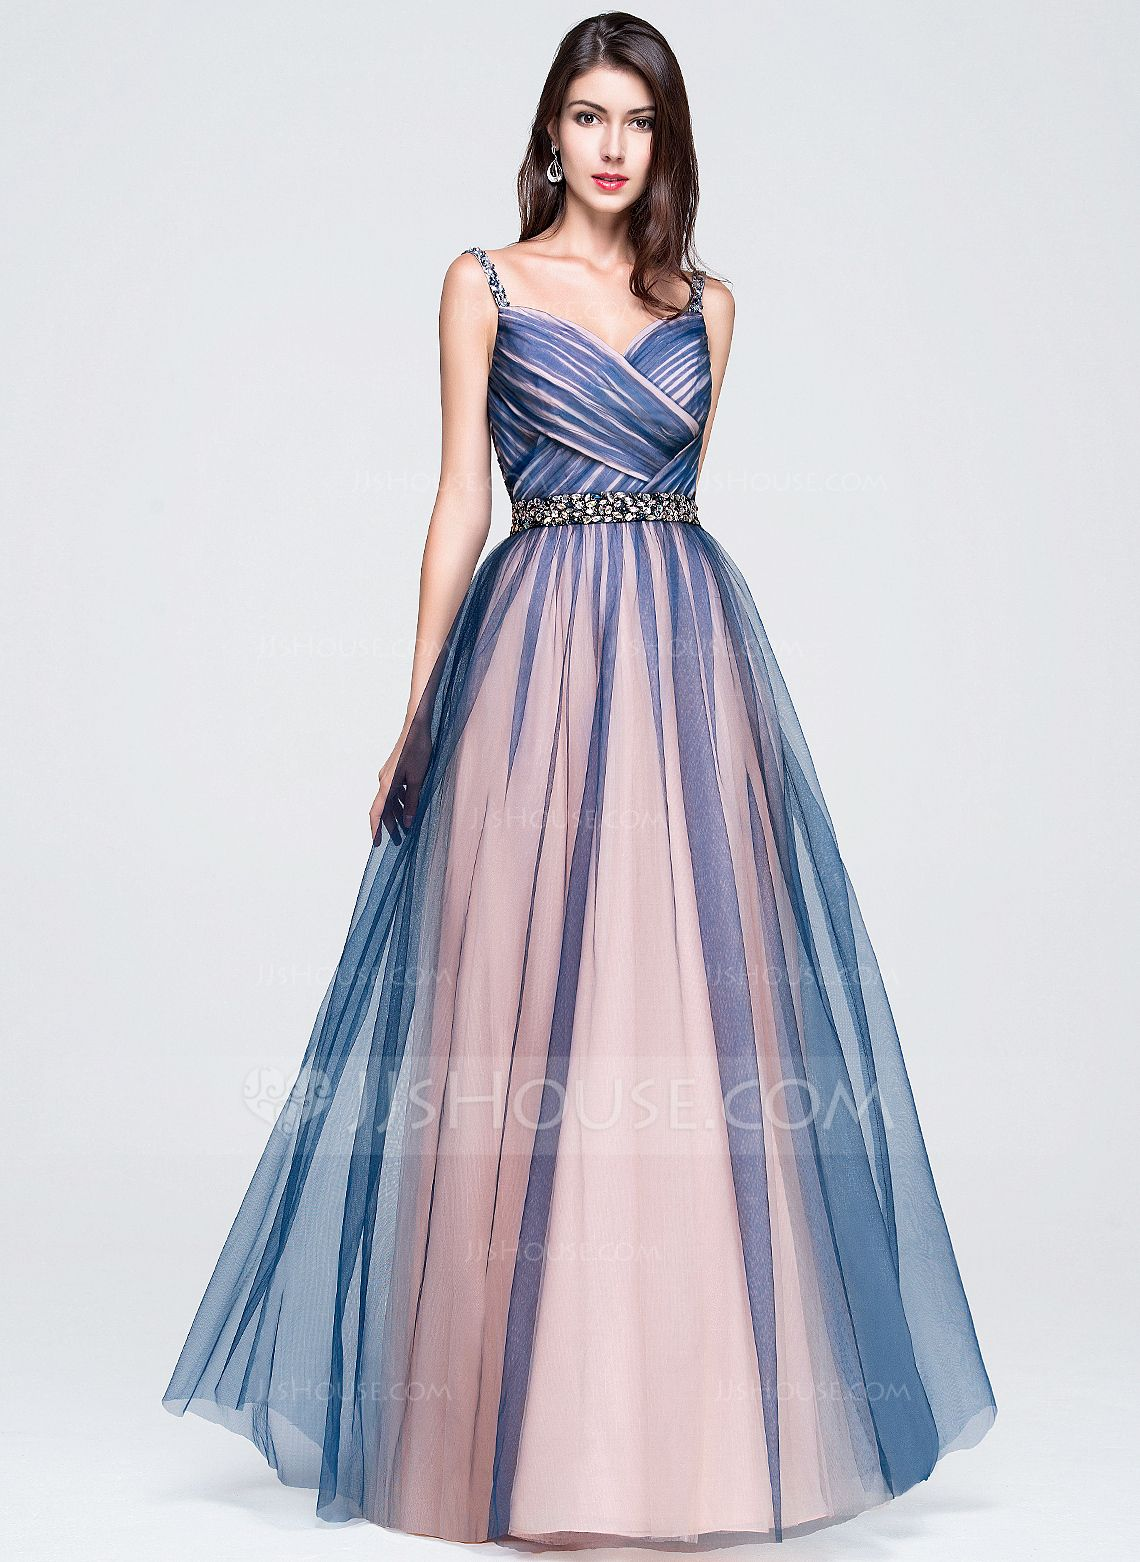 d7c840341d6 A-Line Princess Sweetheart Floor-Length Tulle Prom Dress With Ruffle  Beading Sequins (018070395) - JJsHouse